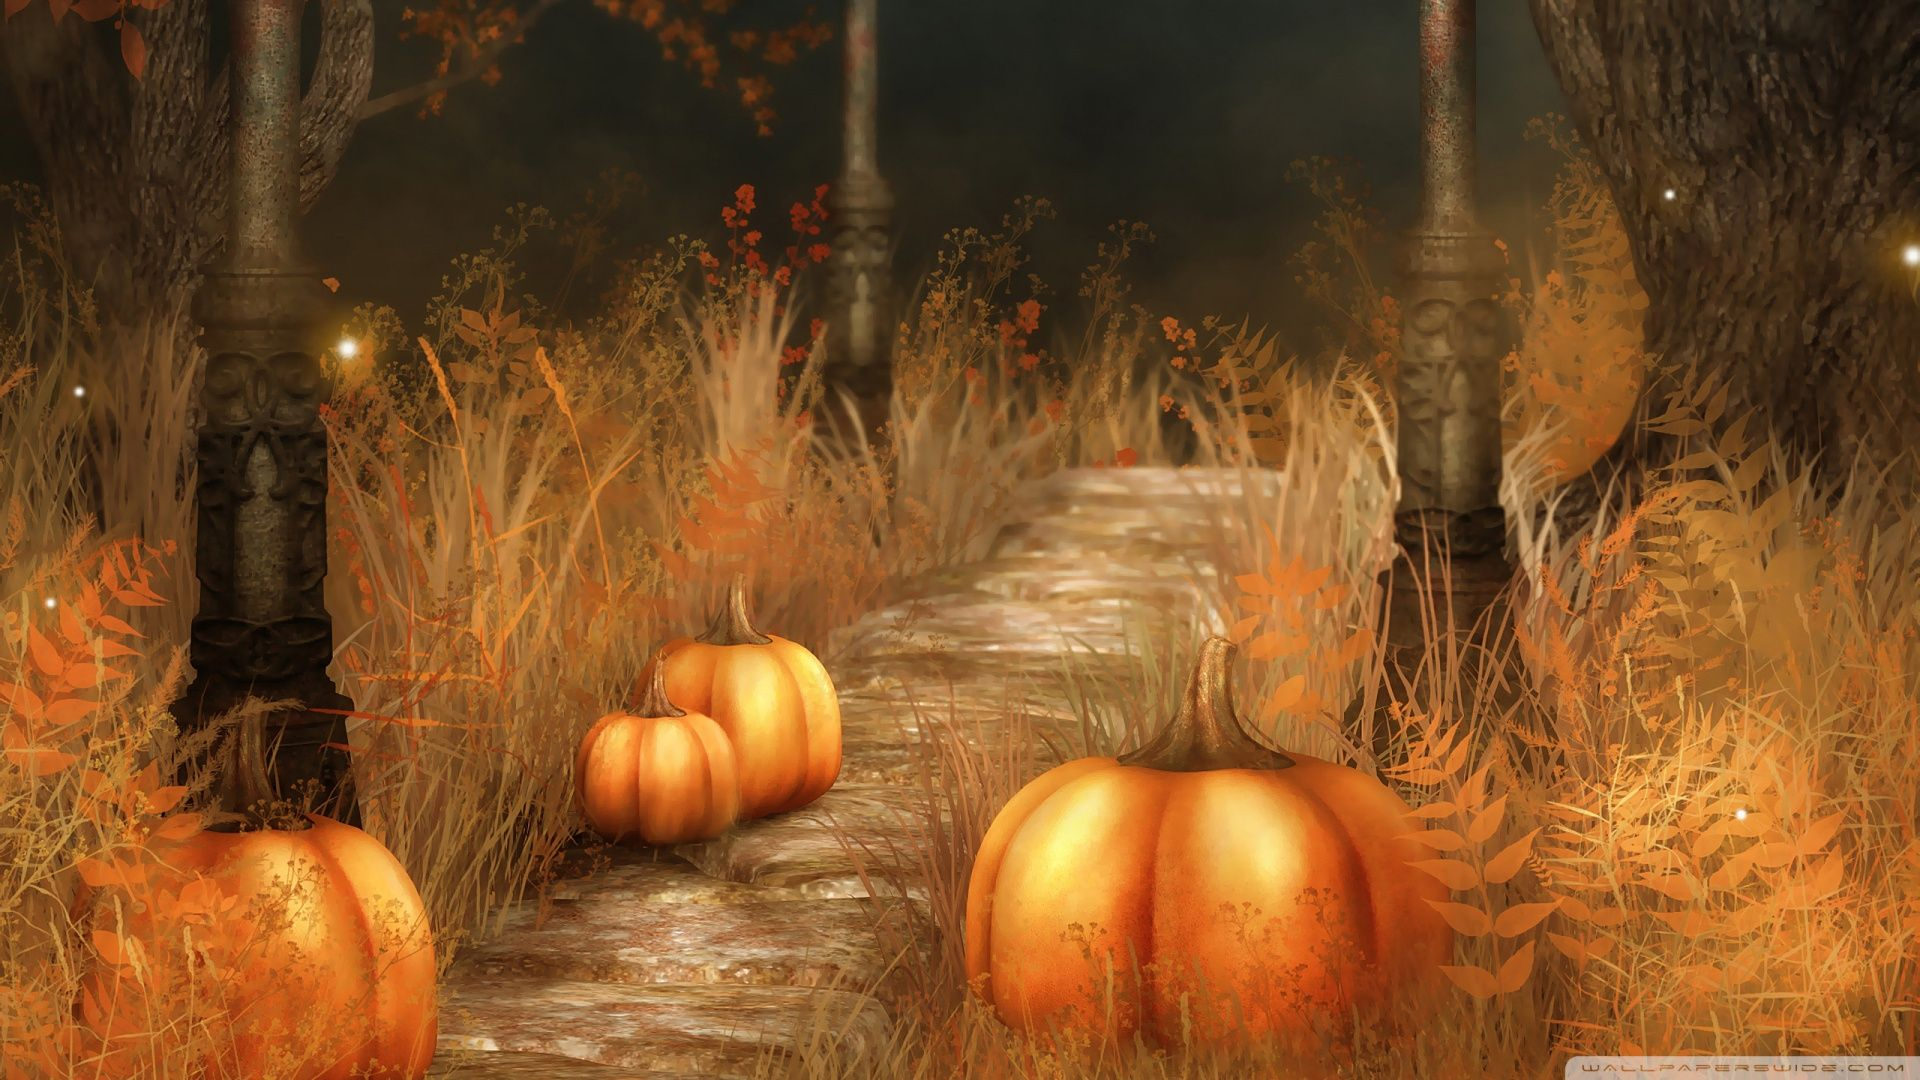 Free Cute Halloween Wallpaper Wallpapersafari Halloween Desktop Wallpaper Free Halloween Wallpaper Halloween Wallpaper